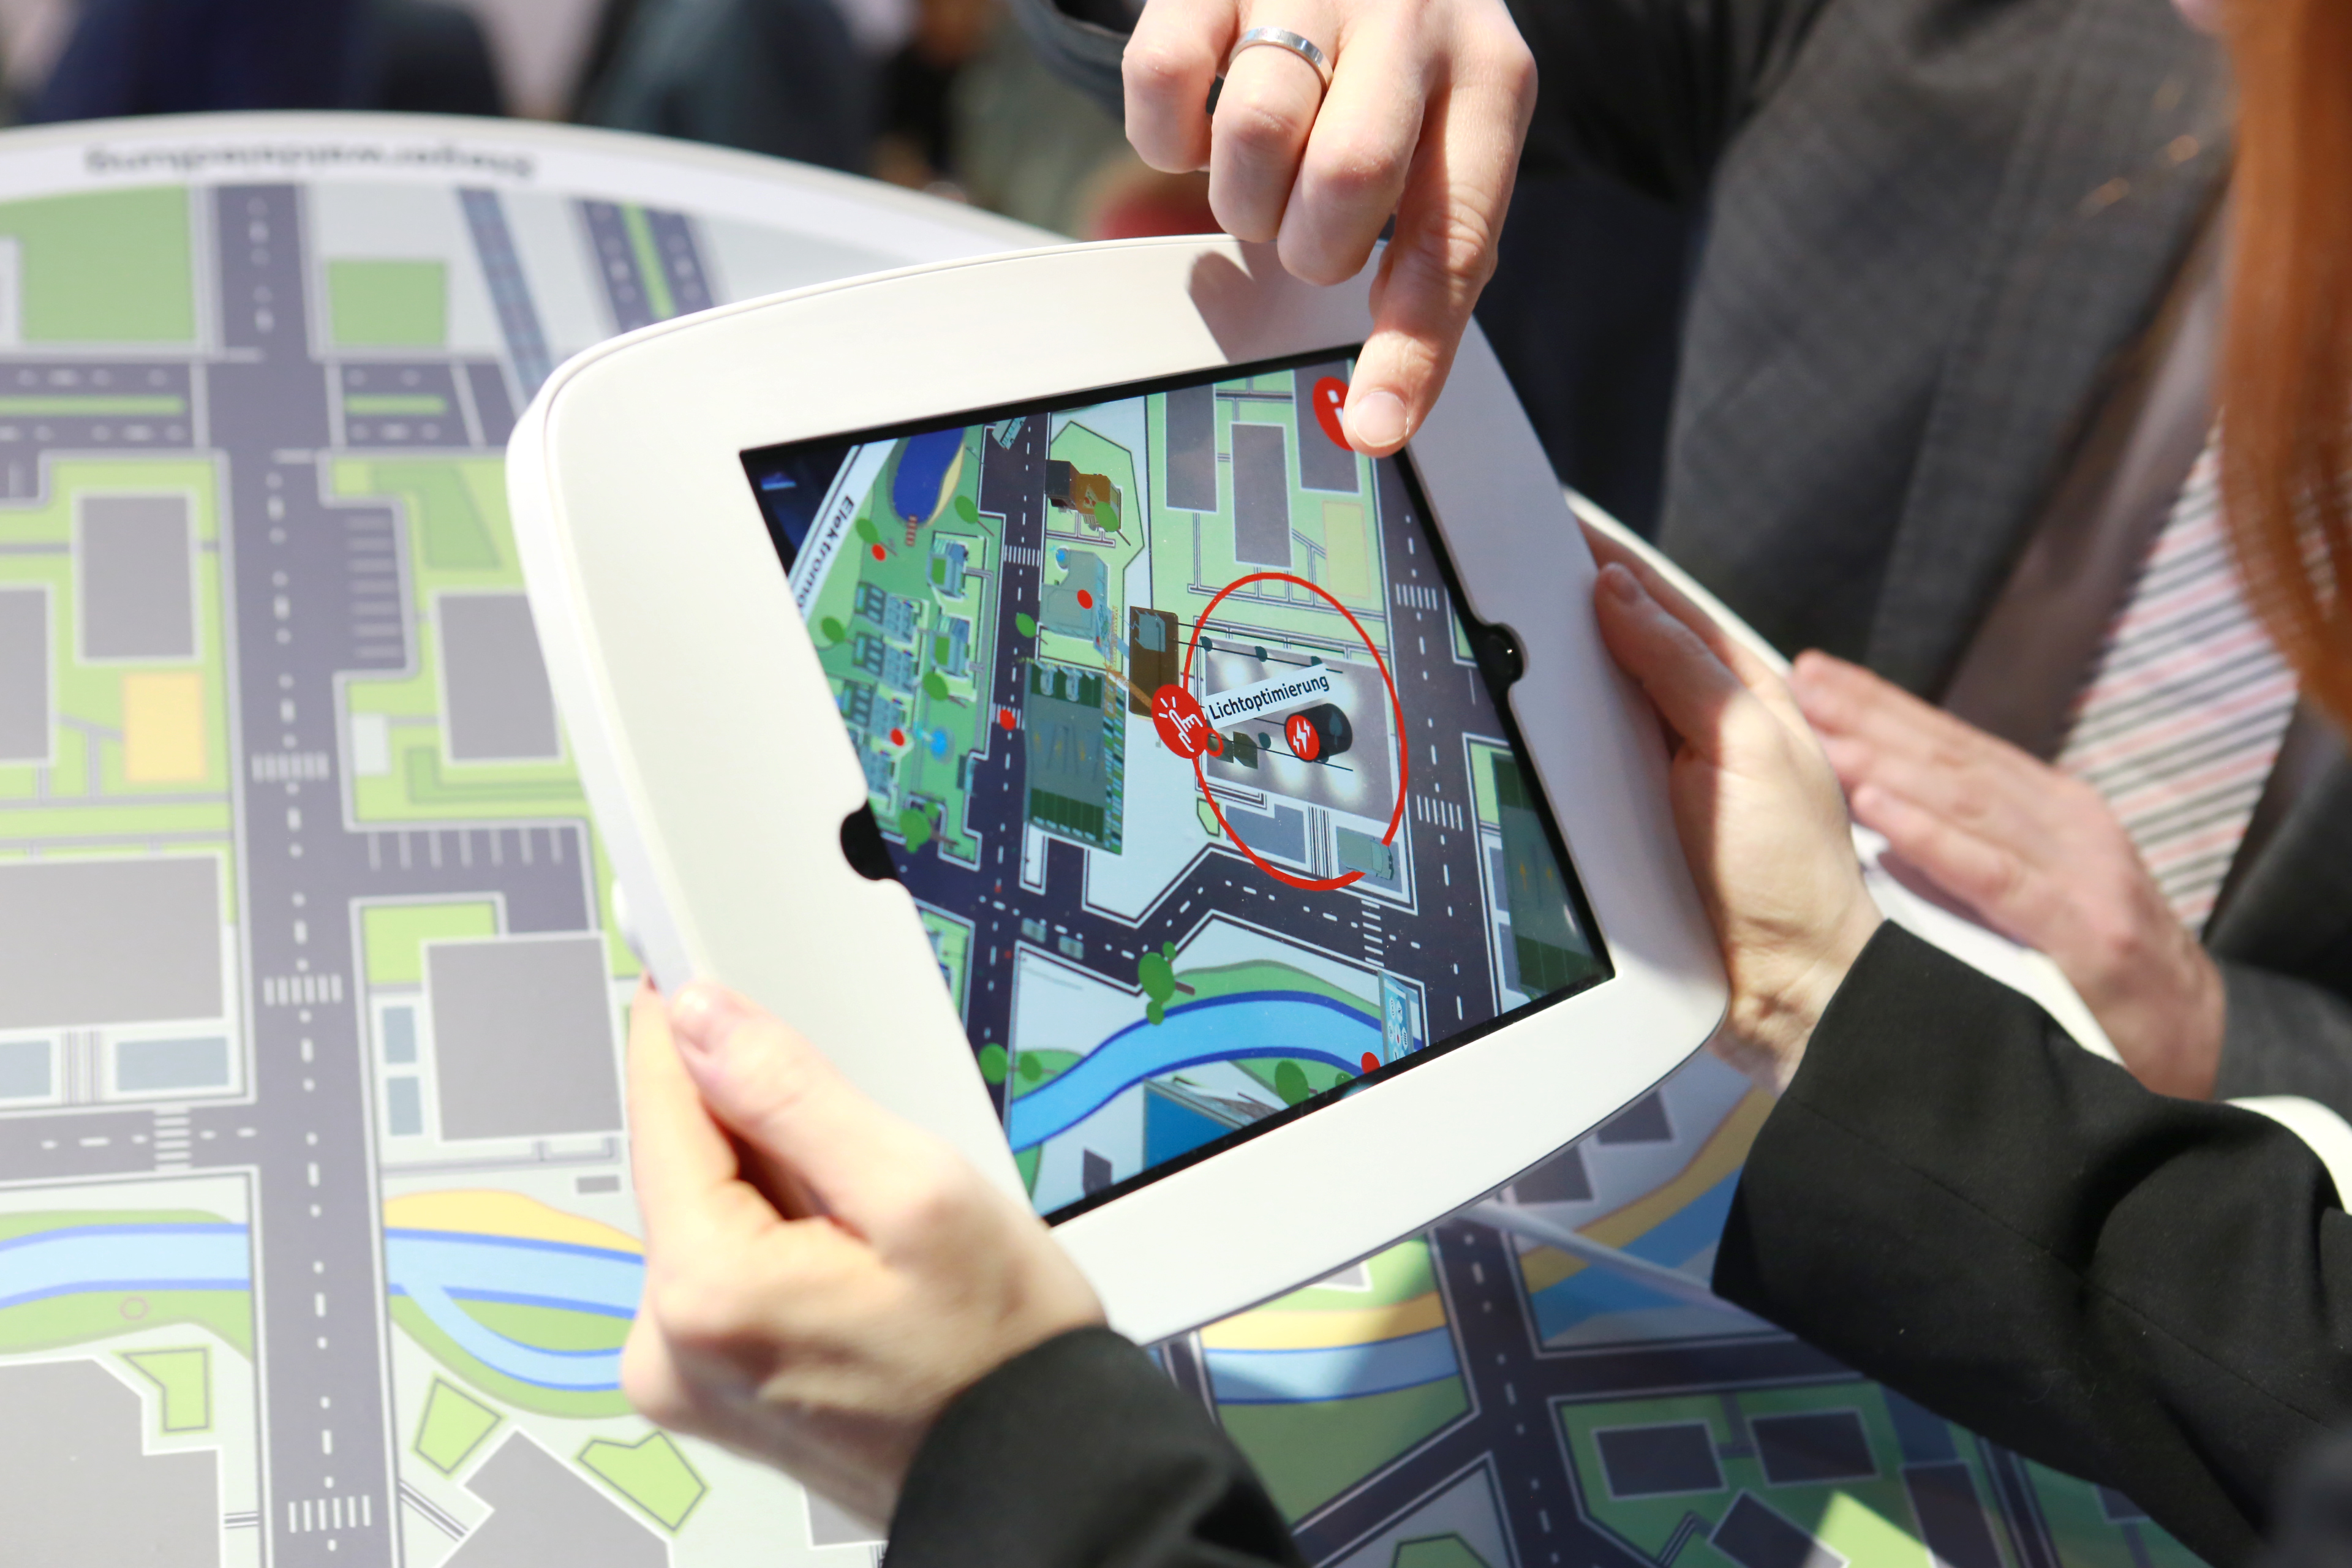 AR-App E-World, in conjunction with a circular, table-sized marker as an eye-catcher